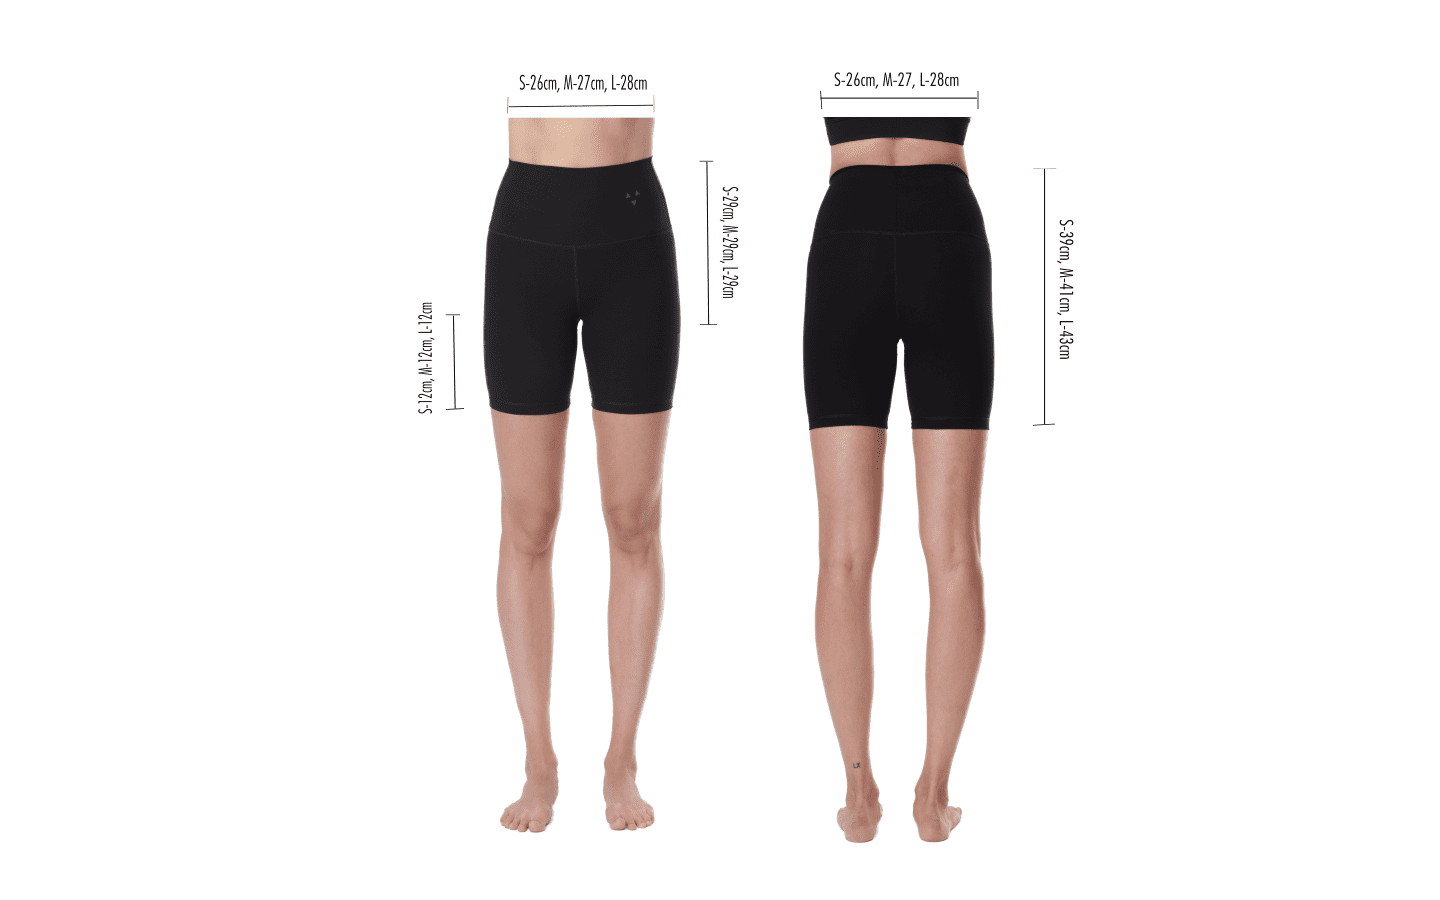 Size guide for sustainable cycling shorts made from bio plastic